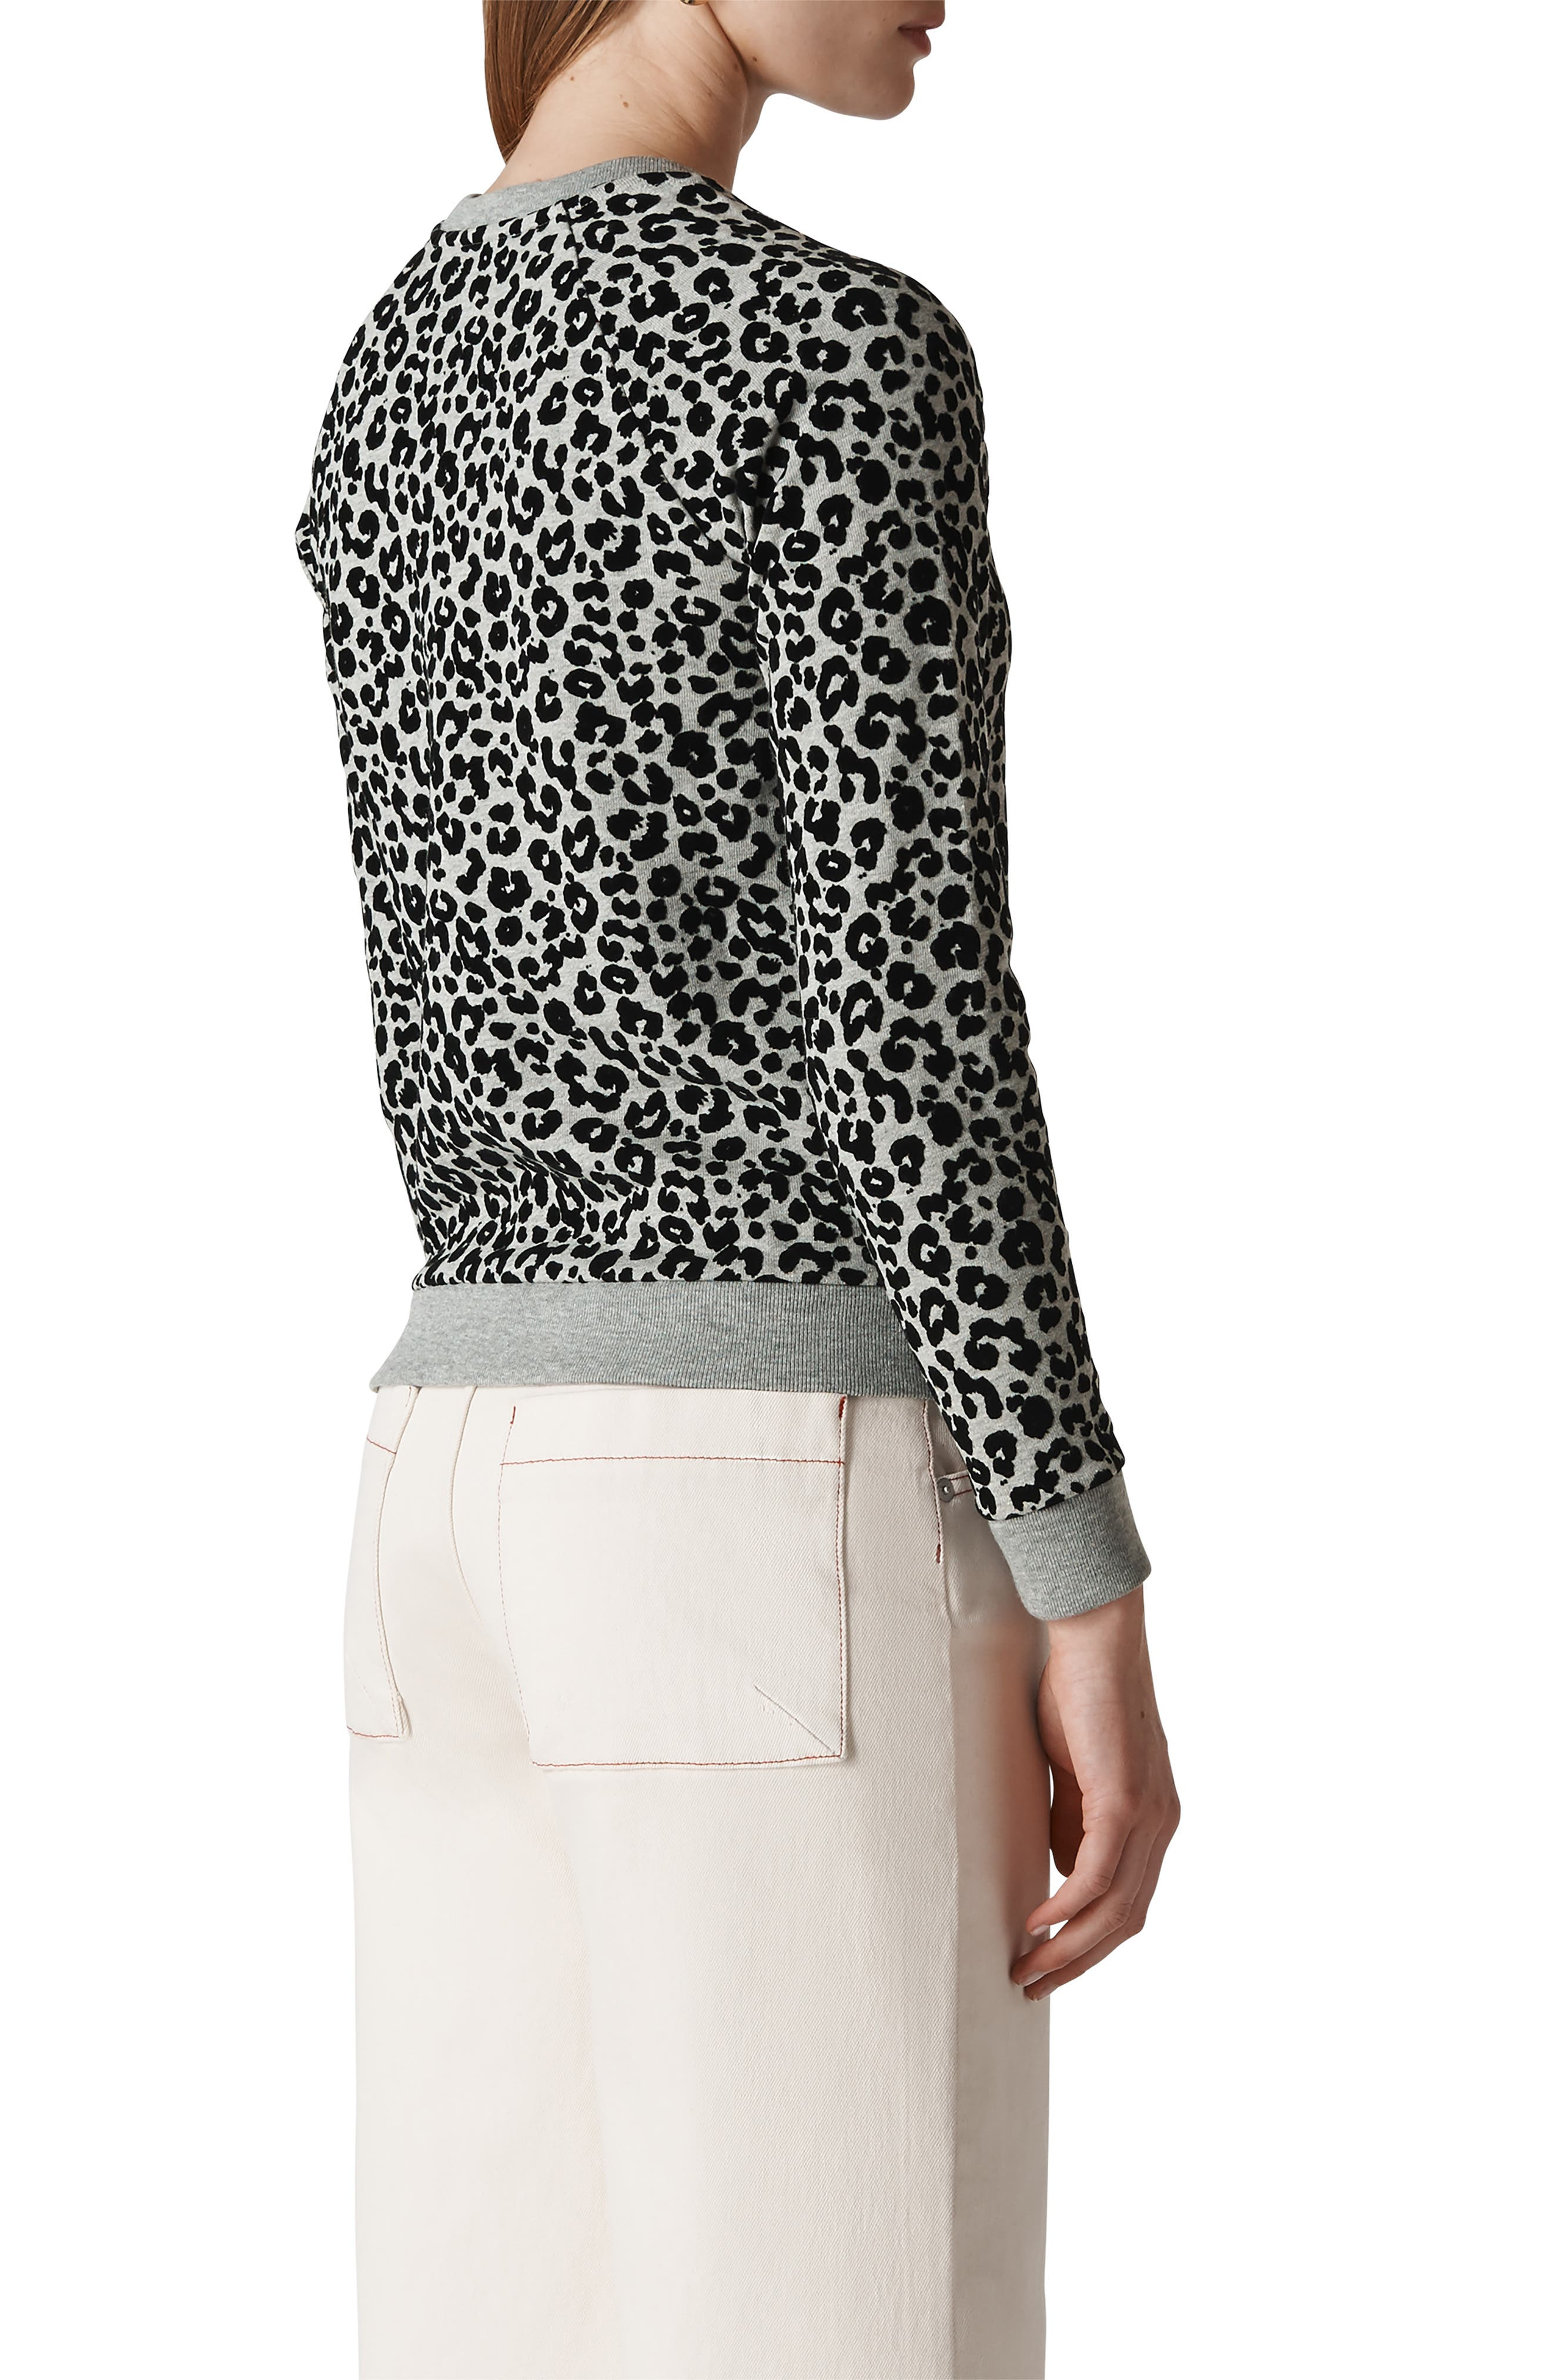 Cheetah Flocked Sweatshirt,                             Alternate thumbnail 2, color,                             GREY